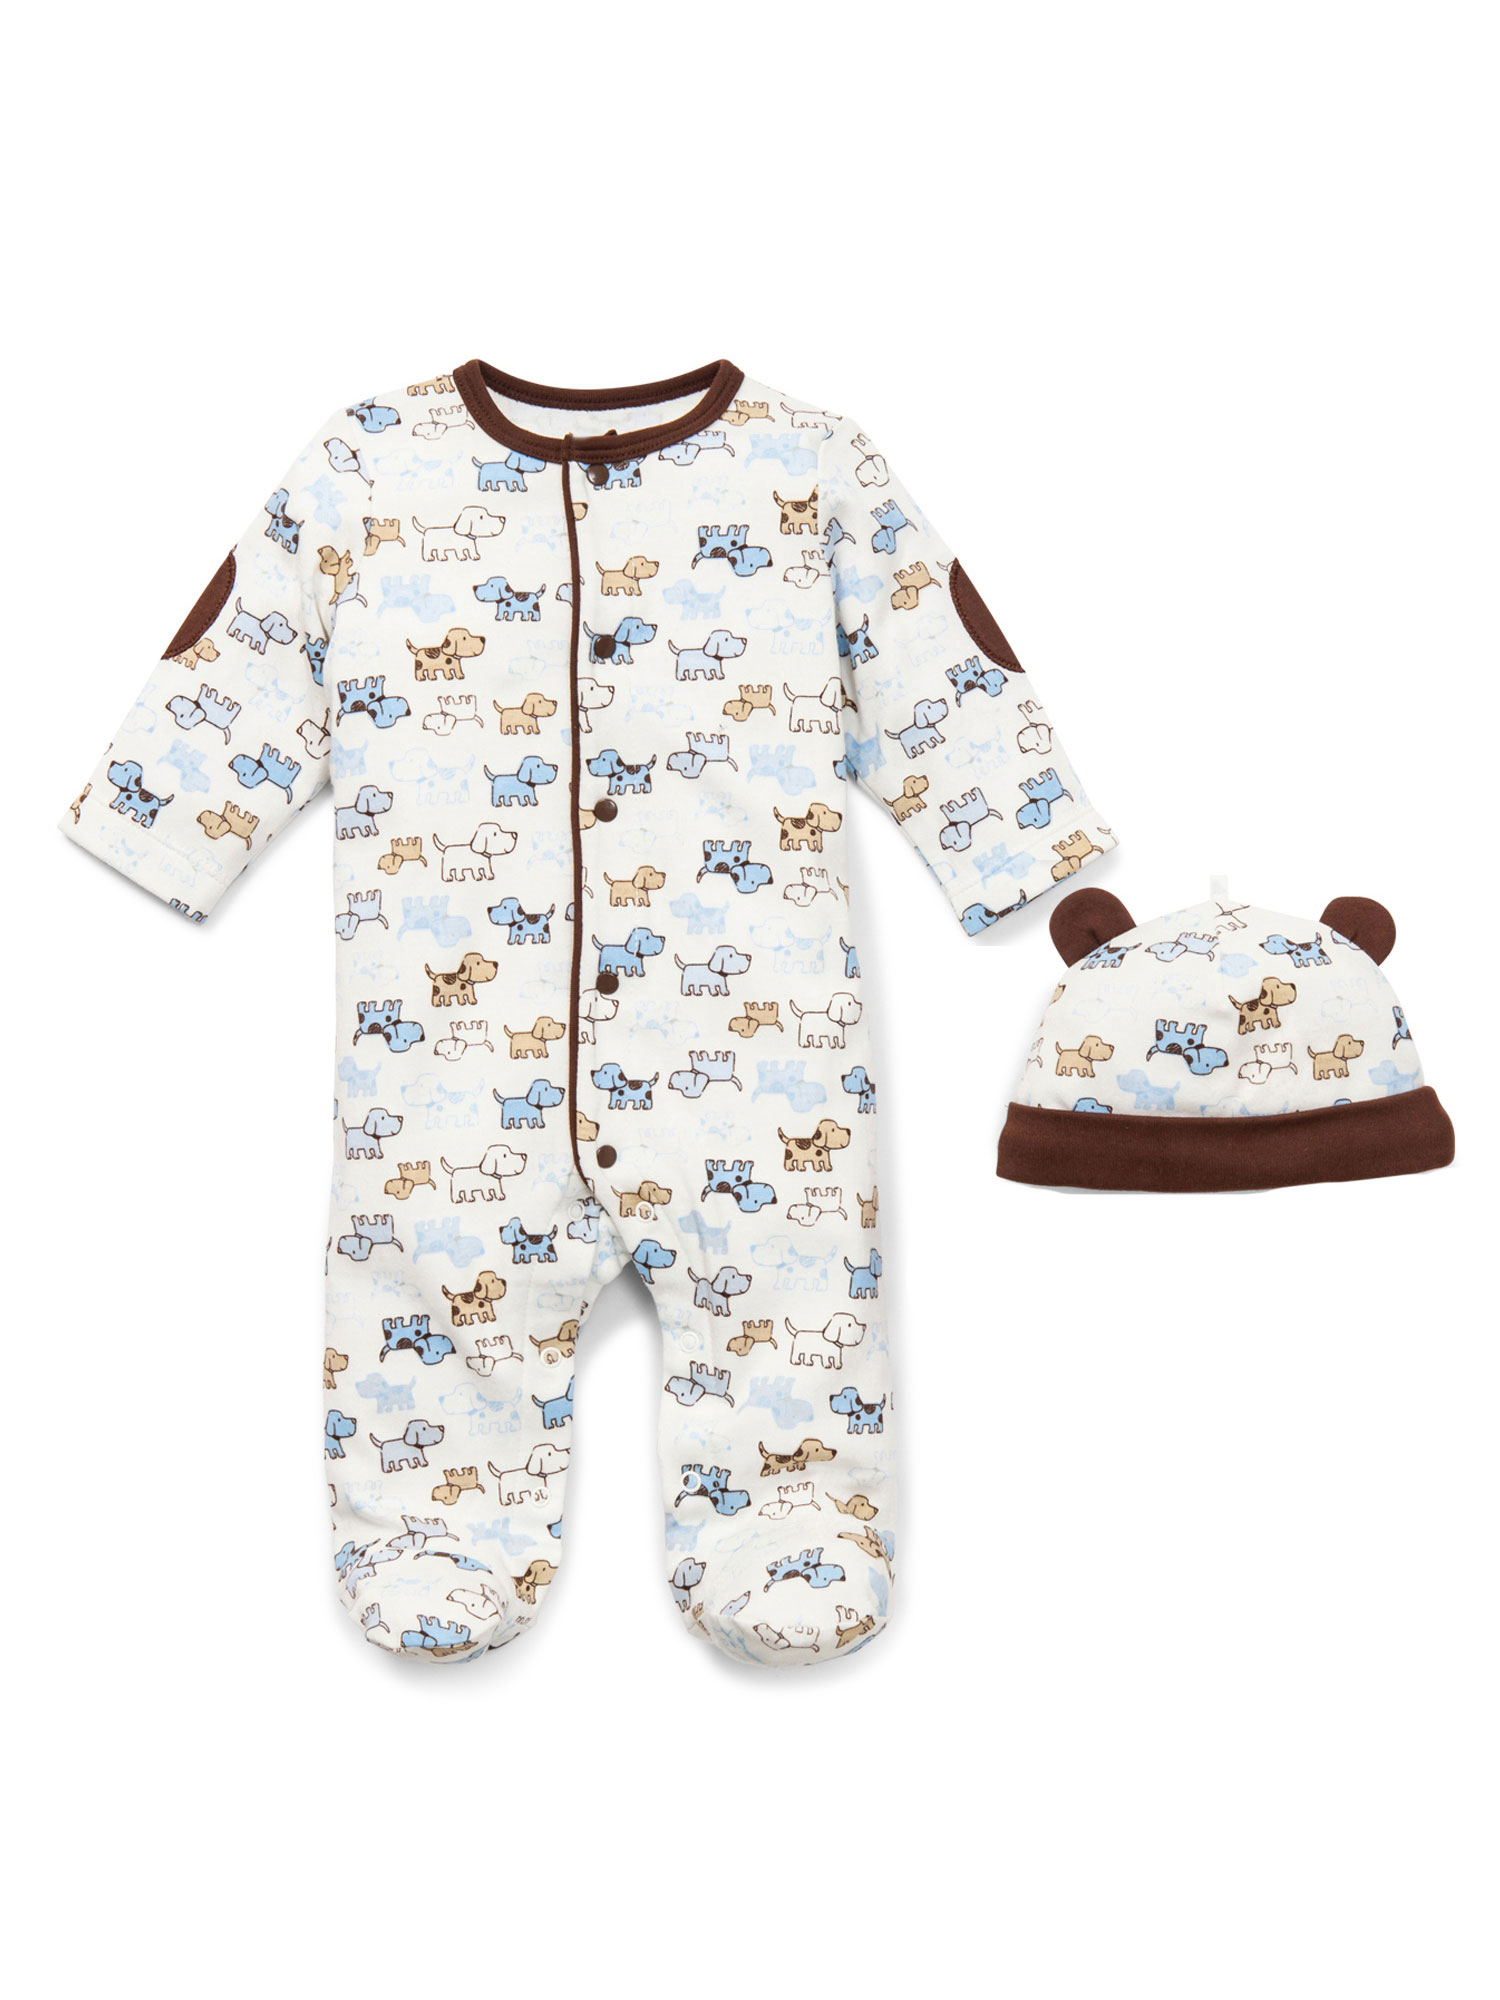 Cute Puppies Snap Front Footie Pajamas with Hat For Baby Boys Sleep N Play One Piece Romper Coverall Cotton Infant Footed Sleeper; Pijamas Para Bebes - White Puppy Print - 6 Month